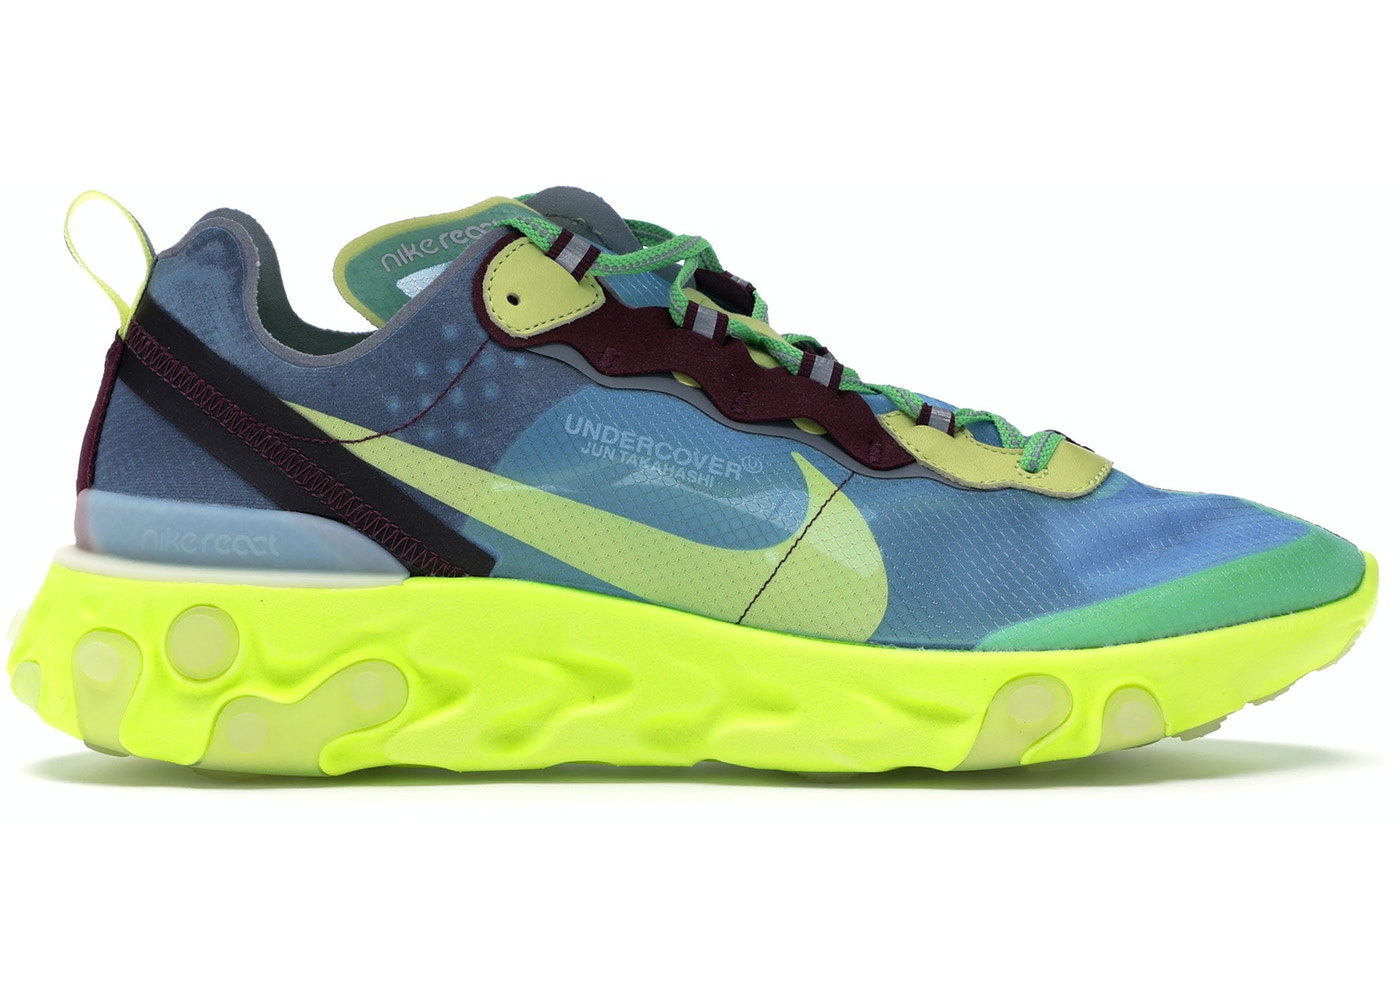 huge discount 26a4e 95657 Nike React Element 87 Undercover Lakeside - BQ2718-400